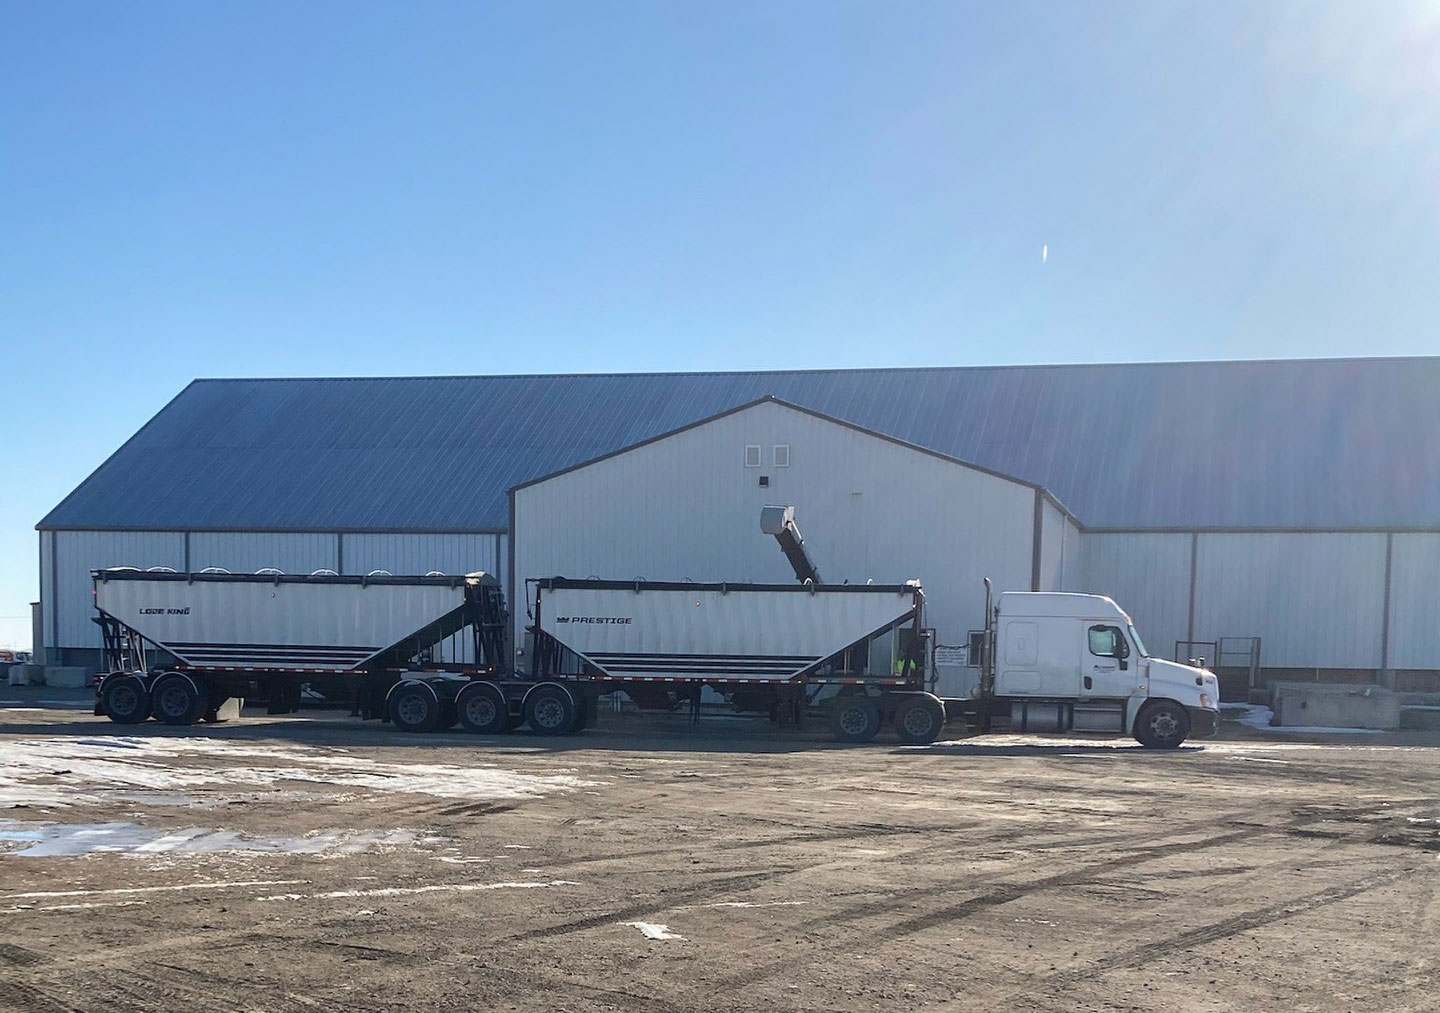 Warehouse Service and Distribution